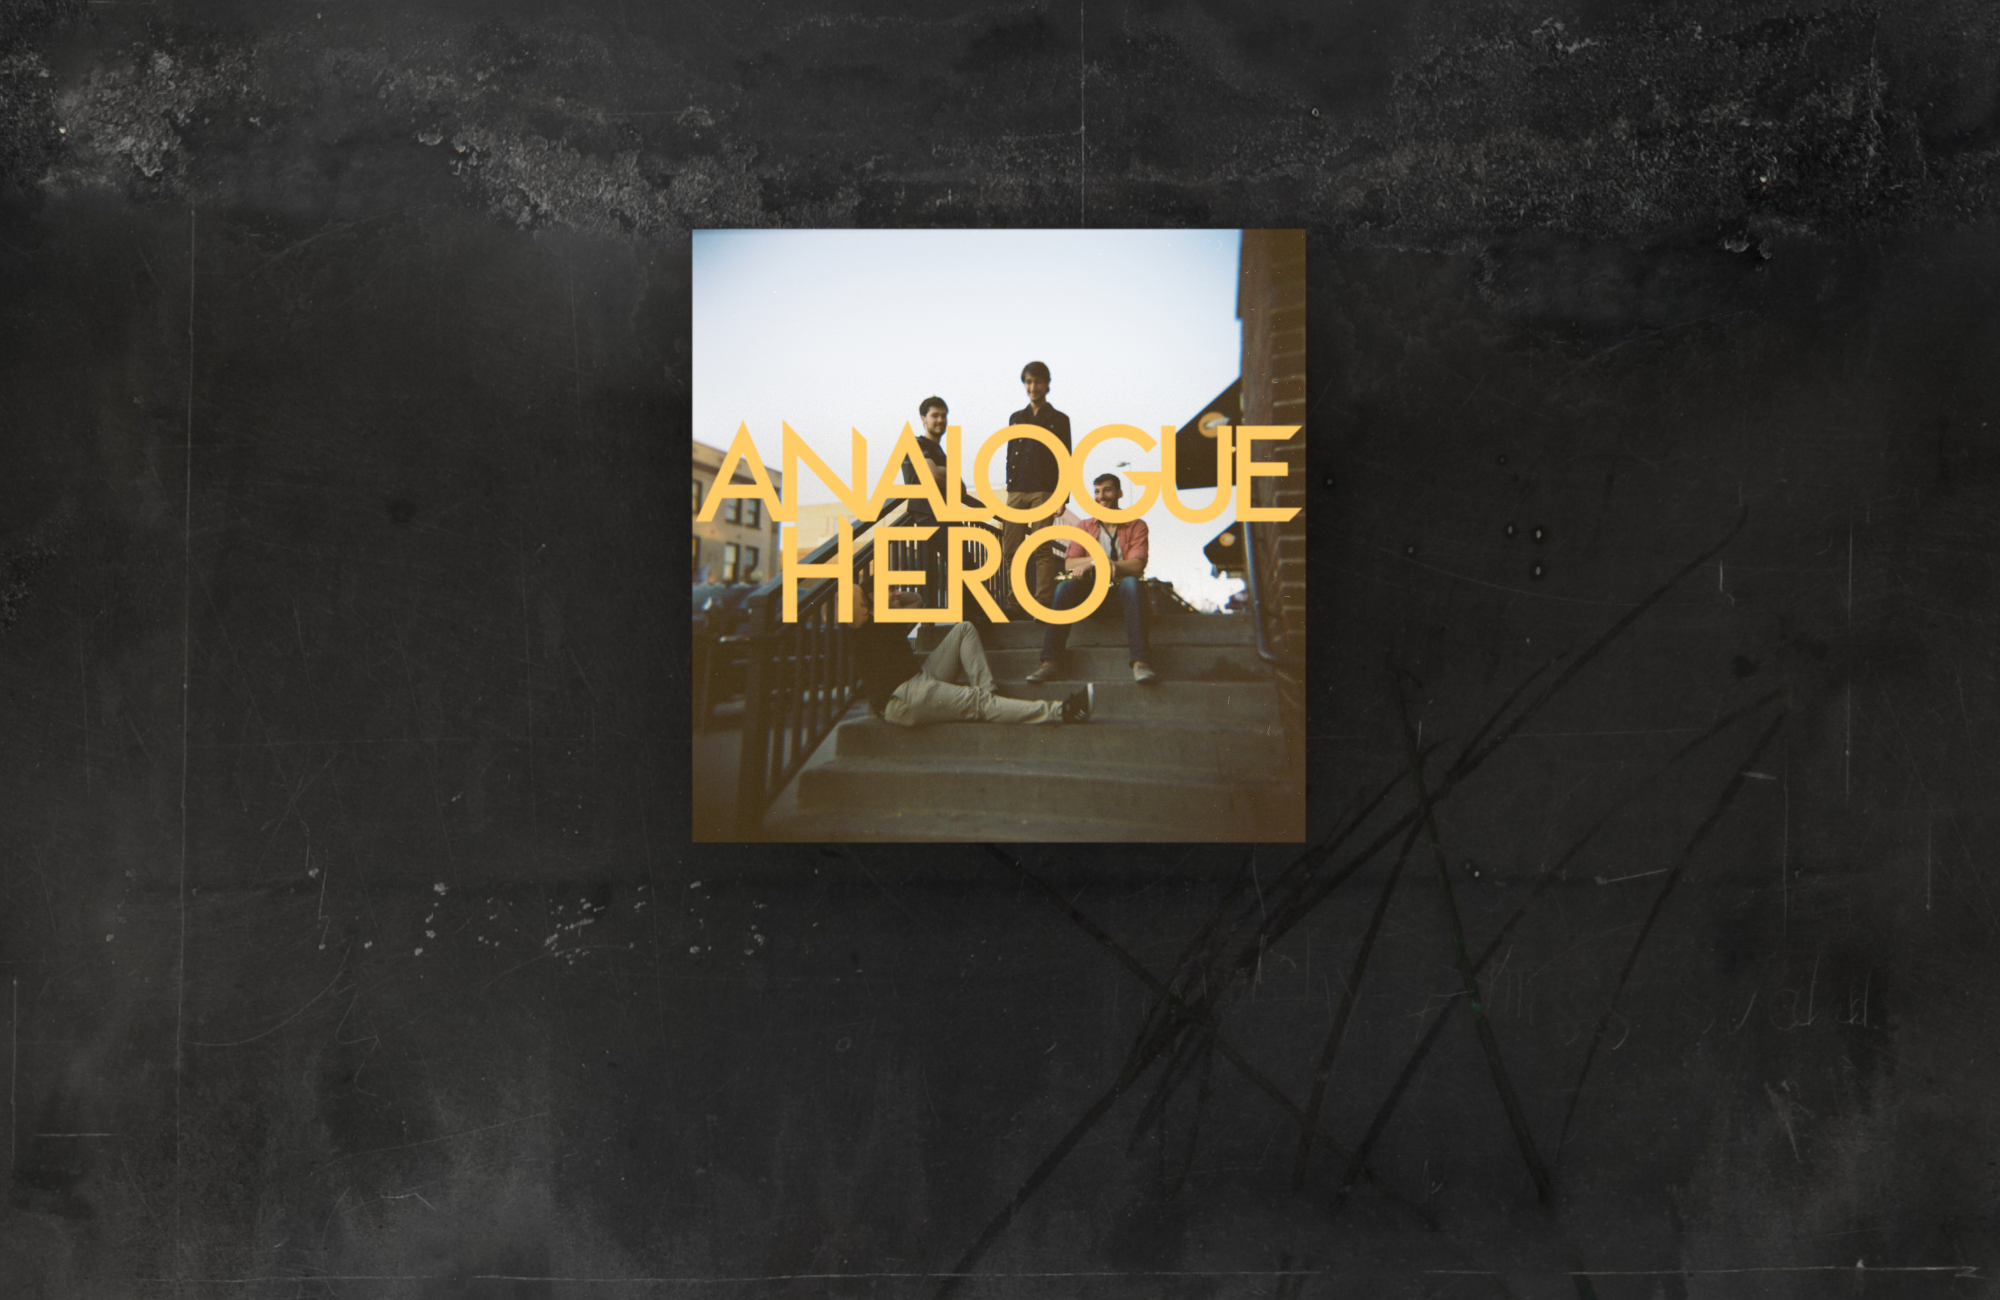 ANALOGUE HERO